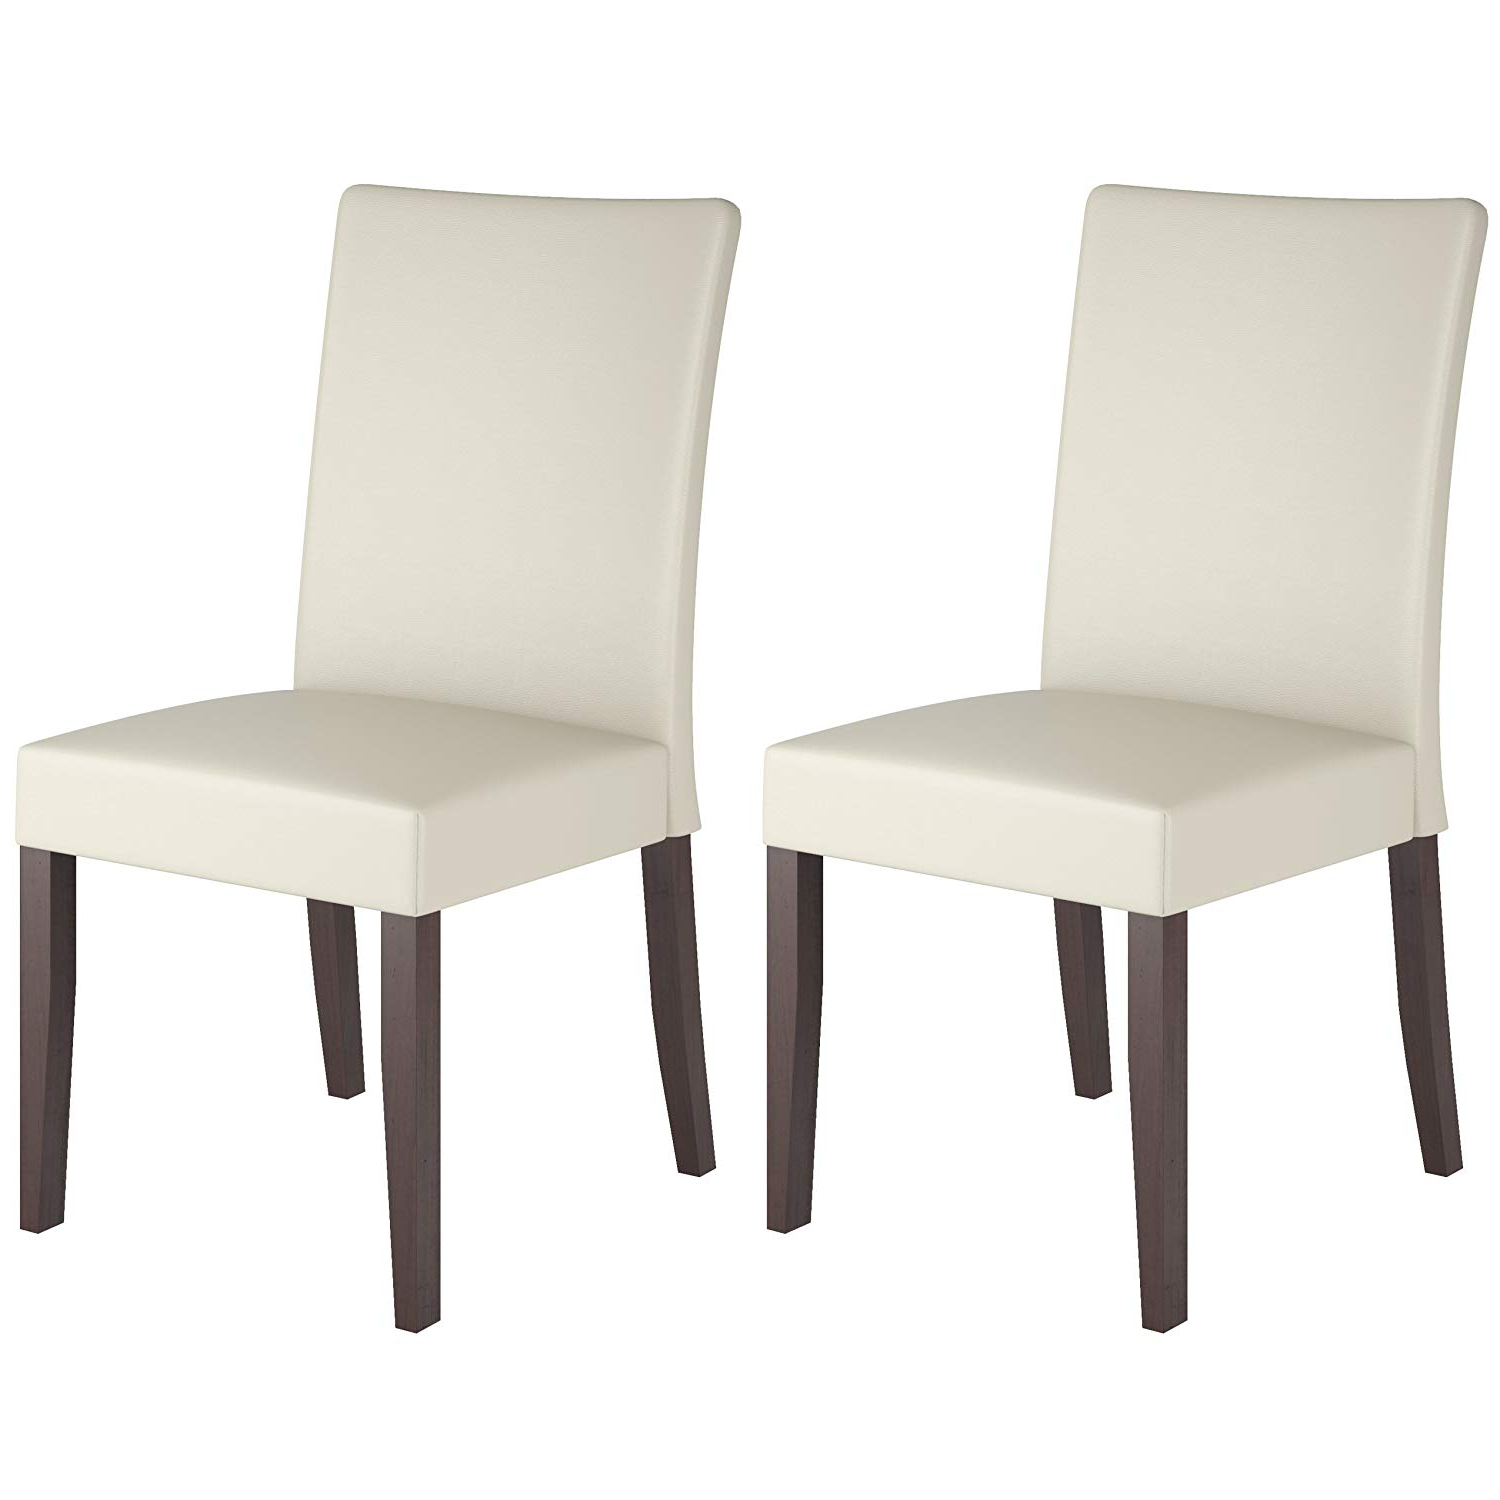 Atwood Transitional Square Dining Tables For Most Current Corliving Atwood Dining Chairs, Small, Cream (View 5 of 25)